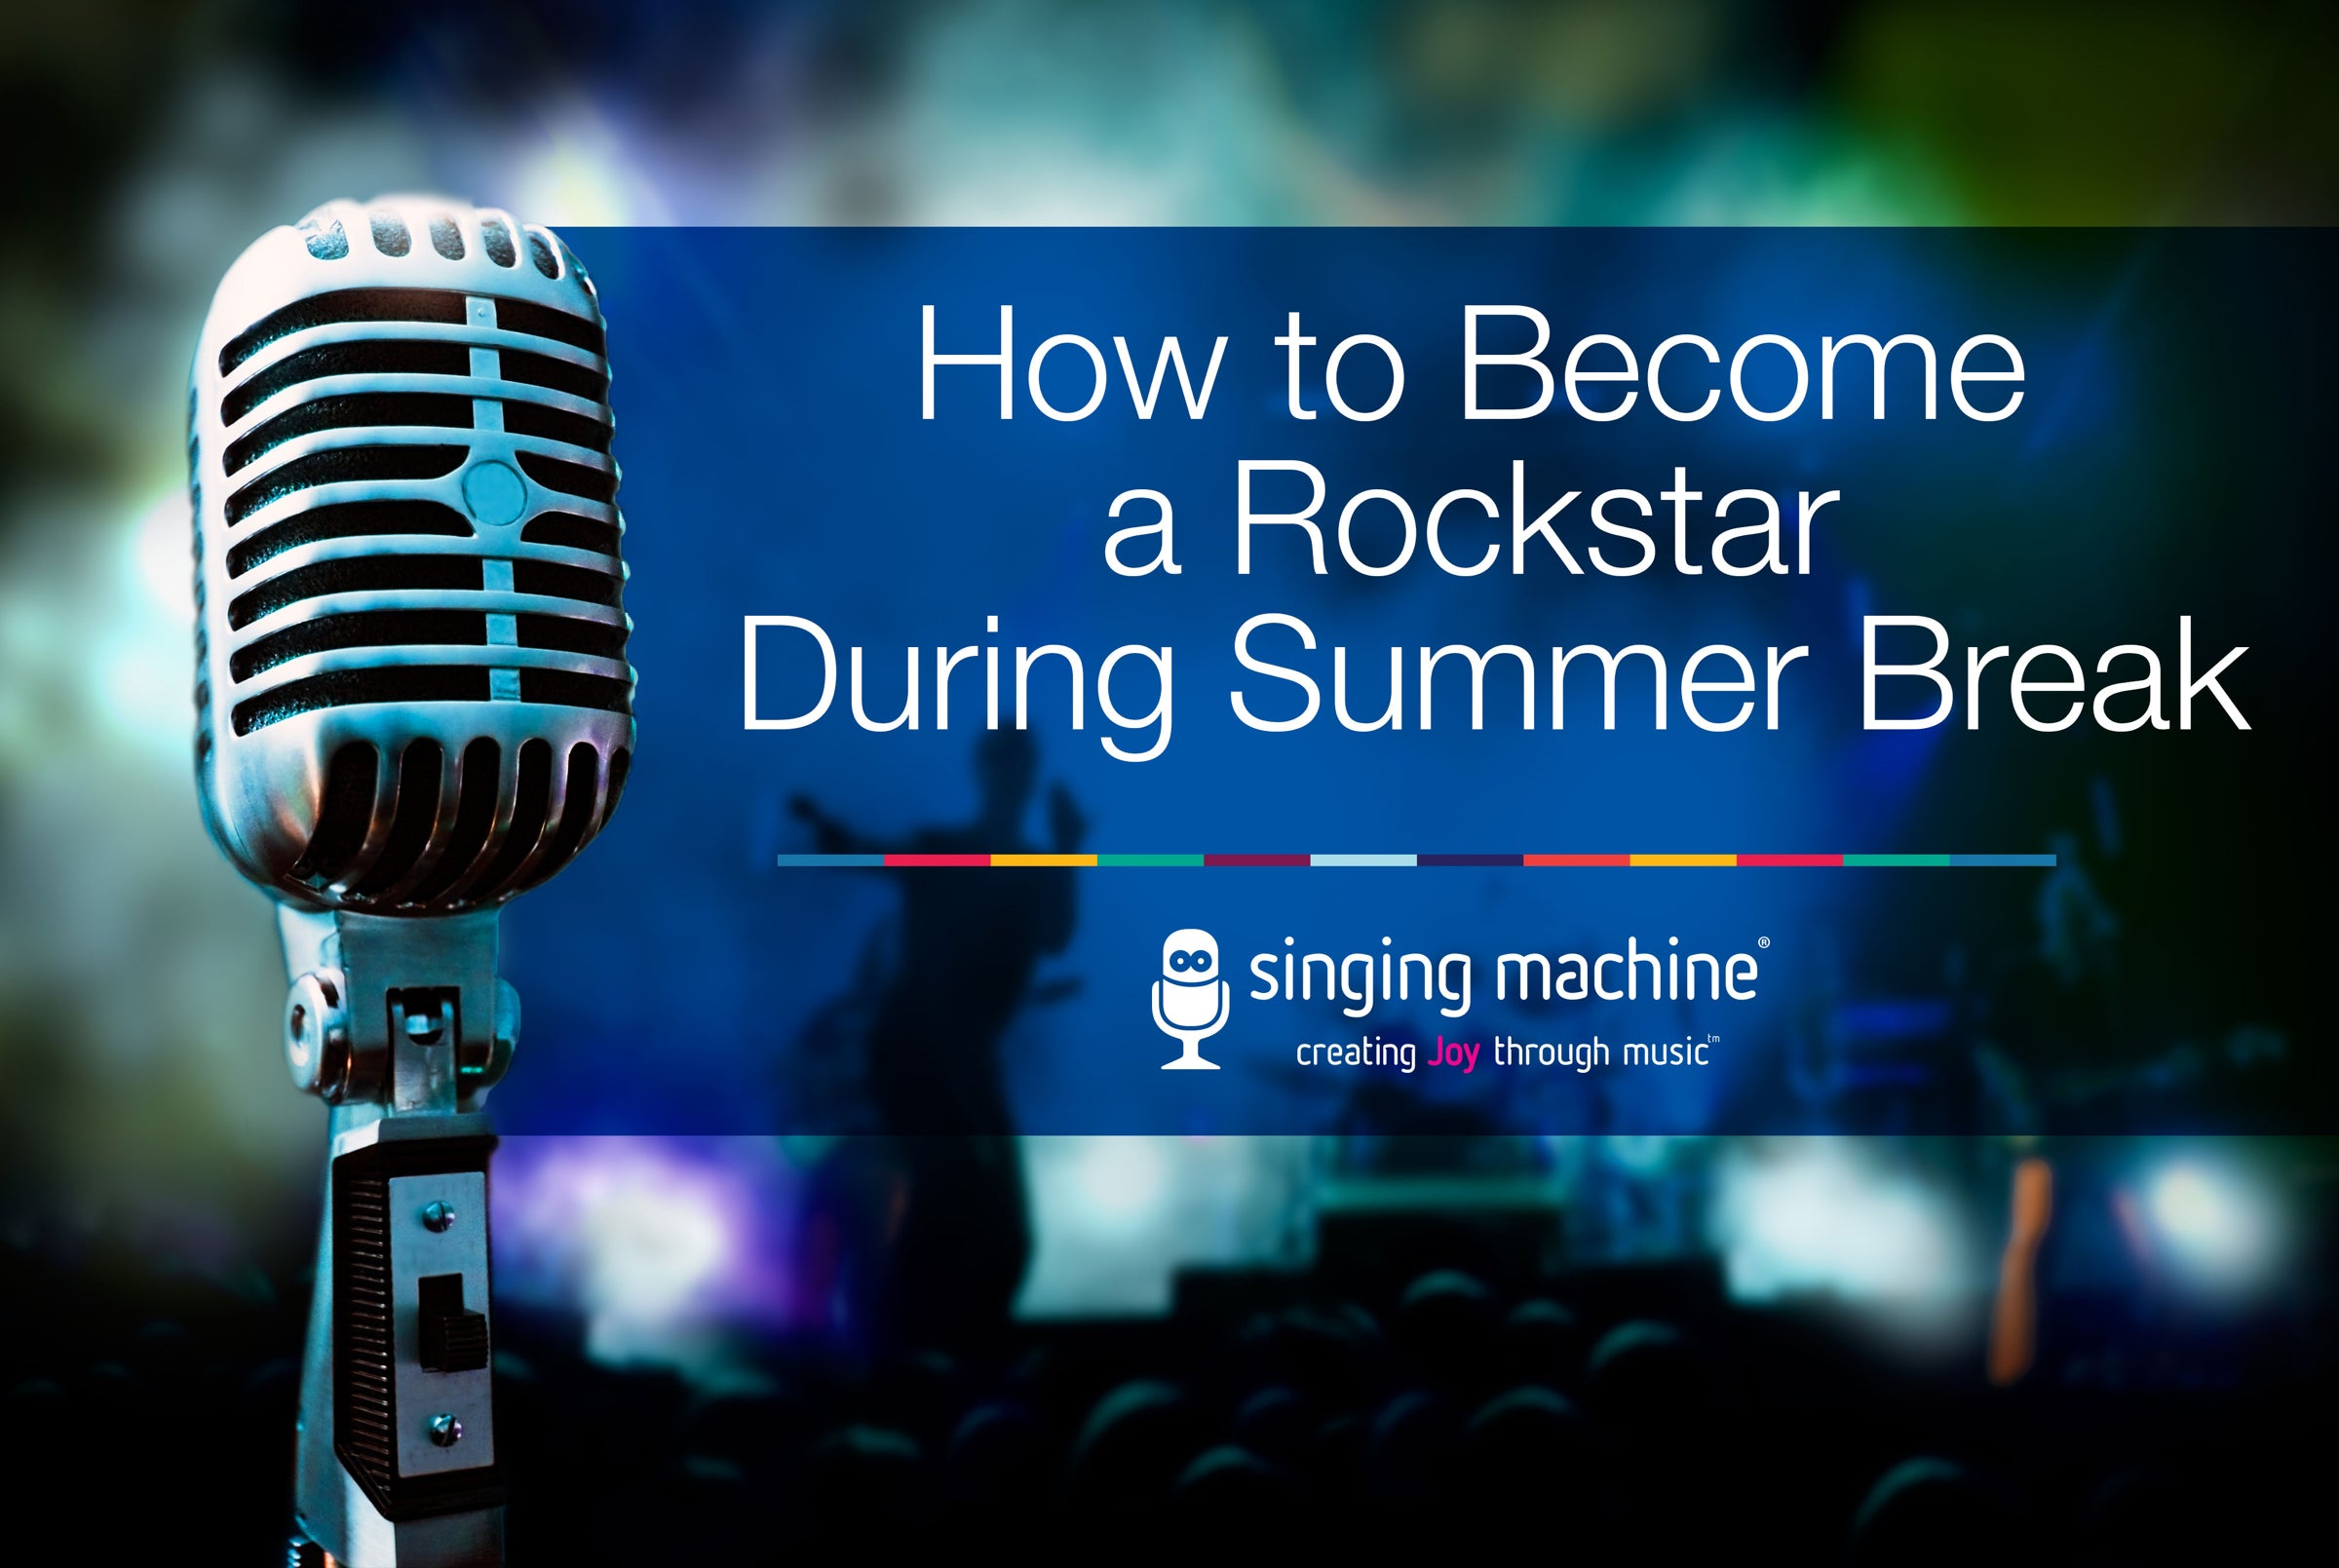 How to Become a Rockstar During Summer Break